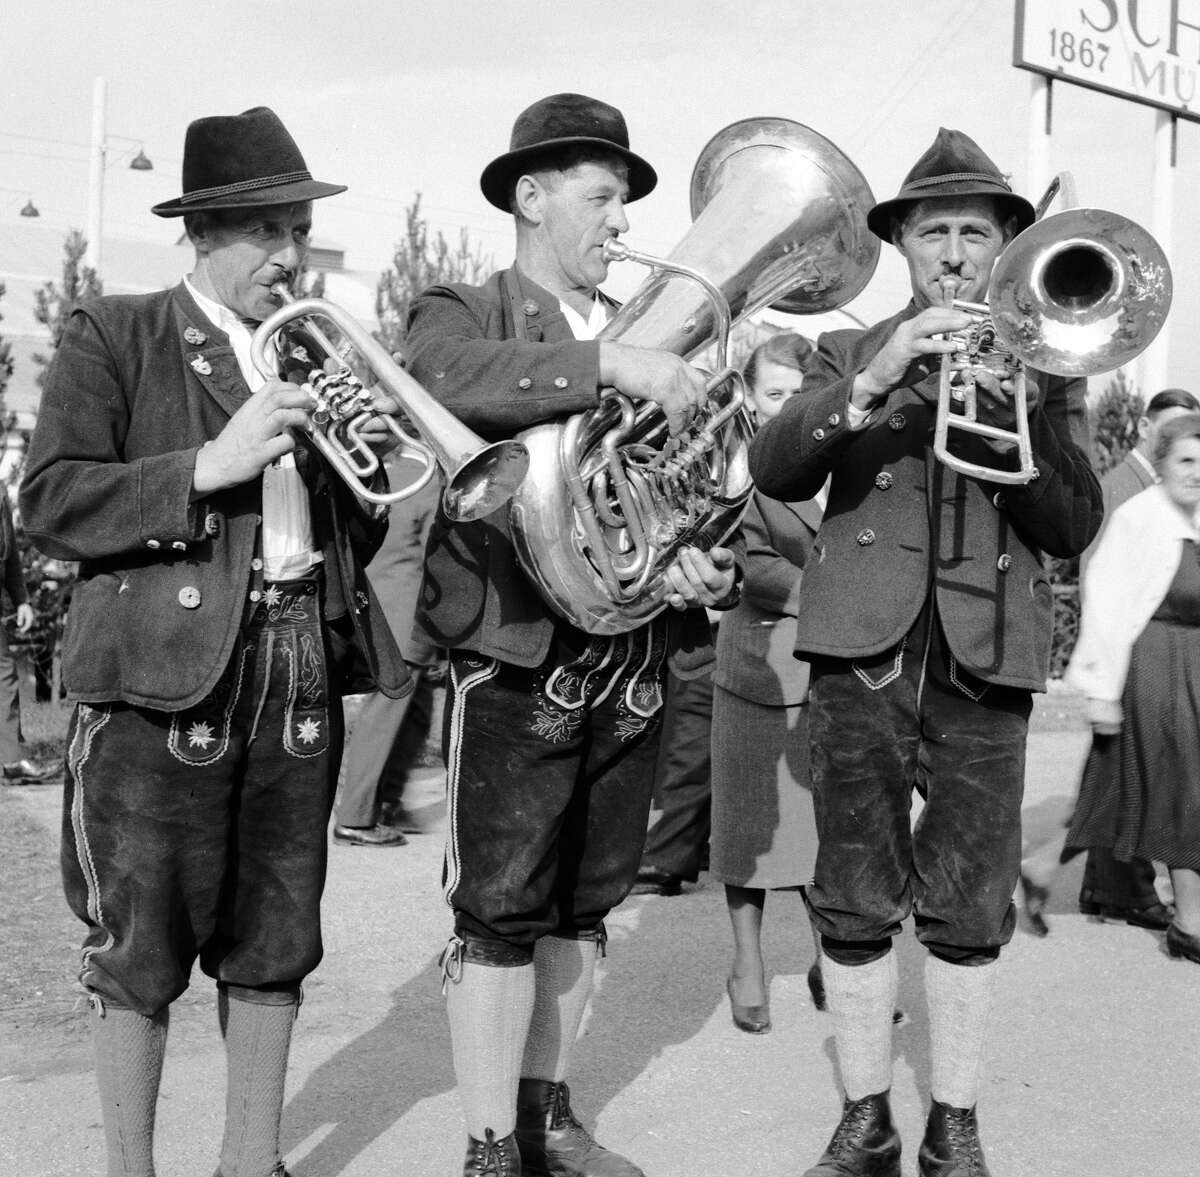 A brass trio in traditional Bavarian dress playing for beer drinkers at the Oktoberfest, Munich.